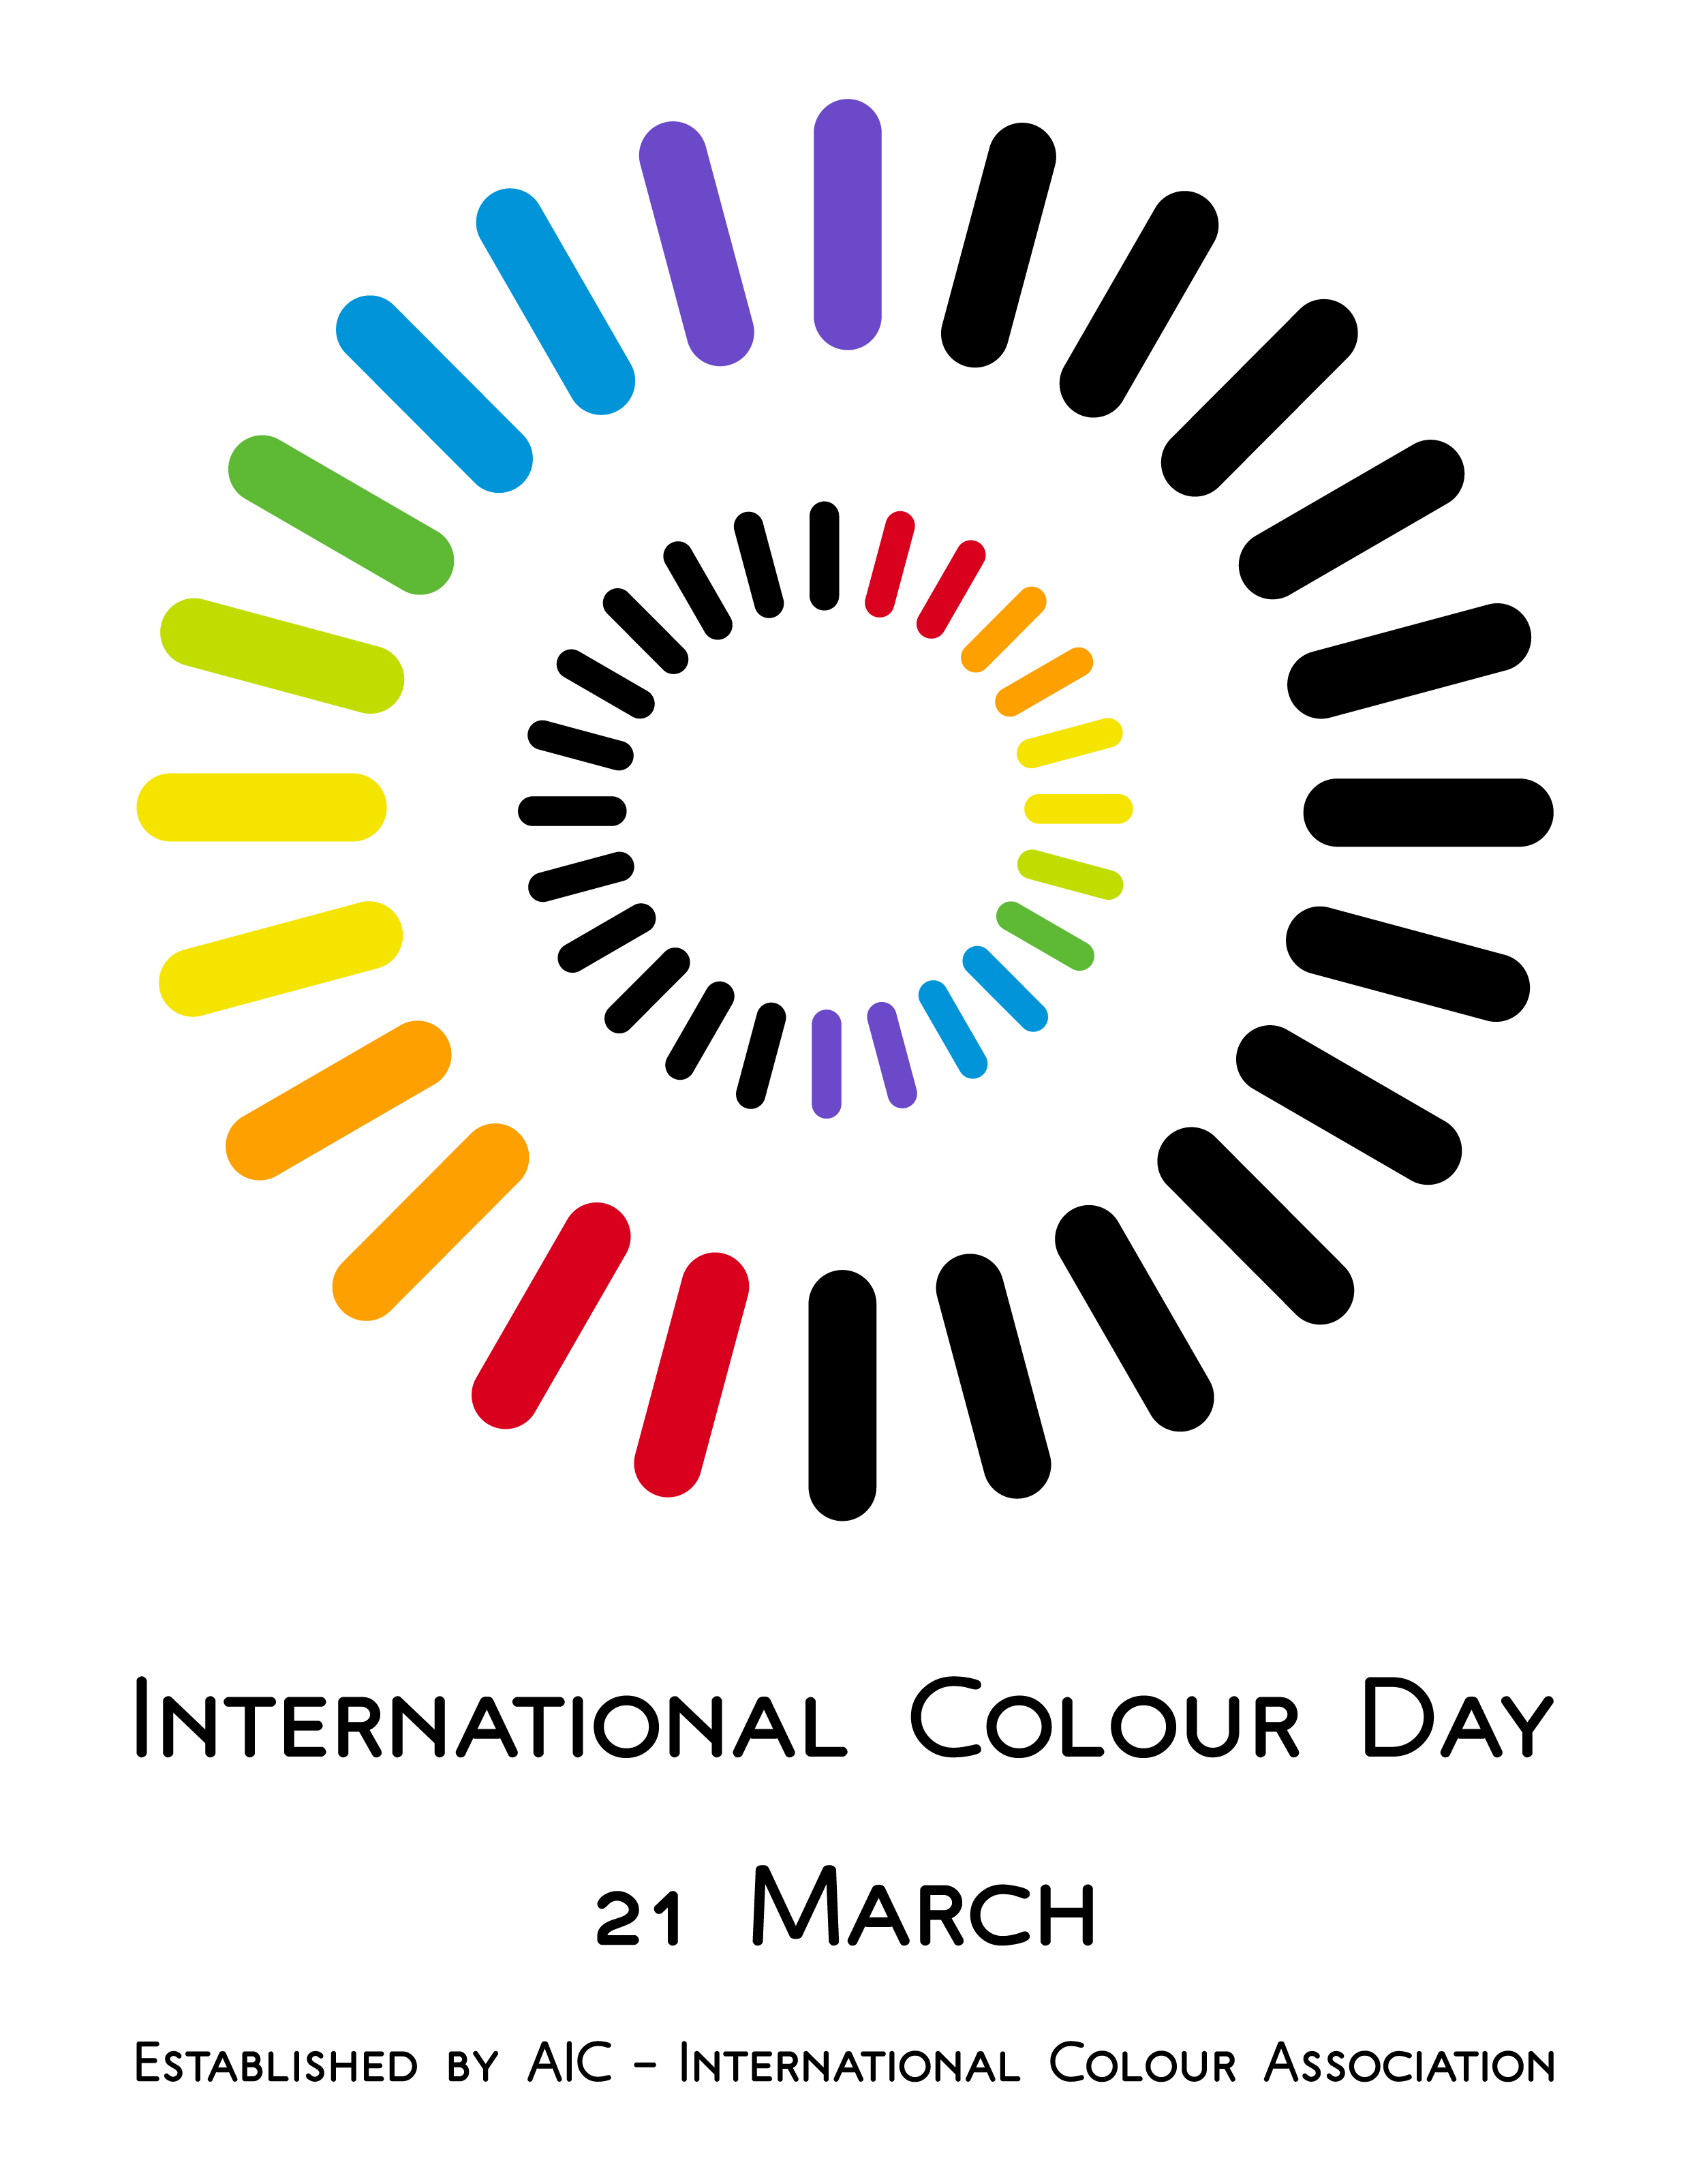 International Colour Day - Wikipedia